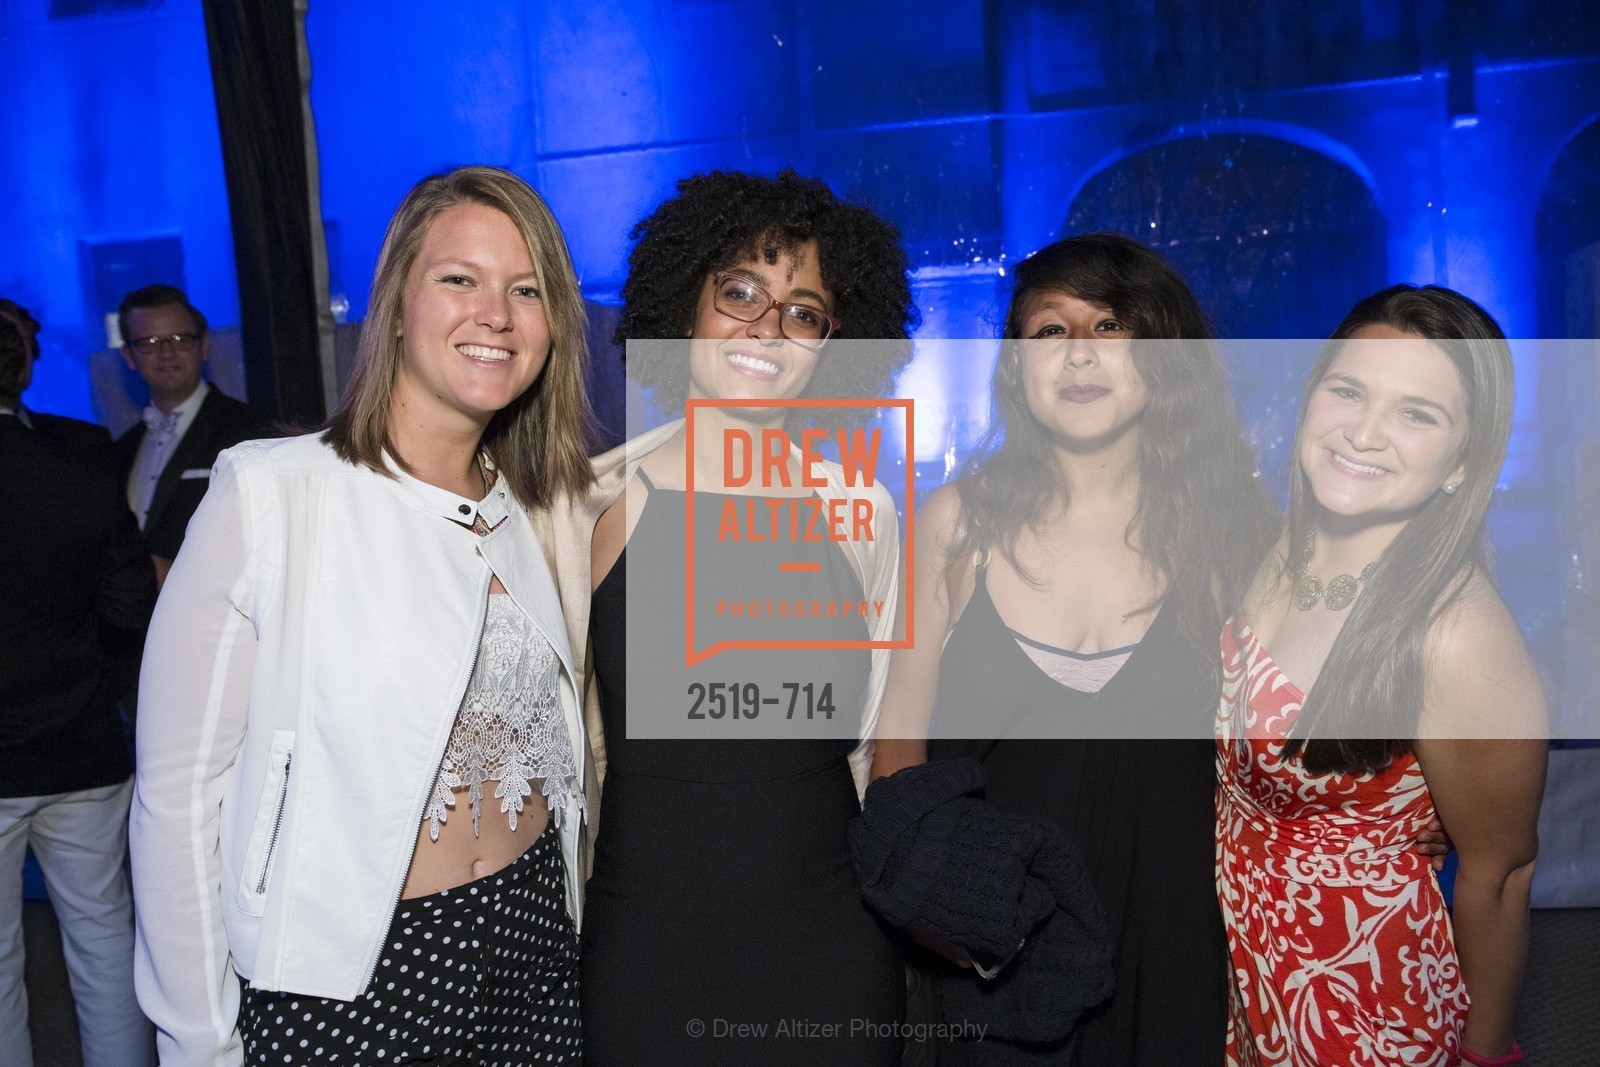 Nina Watkins, Simone Crew, Isabella Noriega, Michelle Battle, SFJAZZ Gala 2015 Honors Joni Mitchell with Lifetime Achievement Award, US, May 9th, 2015,Drew Altizer, Drew Altizer Photography, full-service agency, private events, San Francisco photographer, photographer california